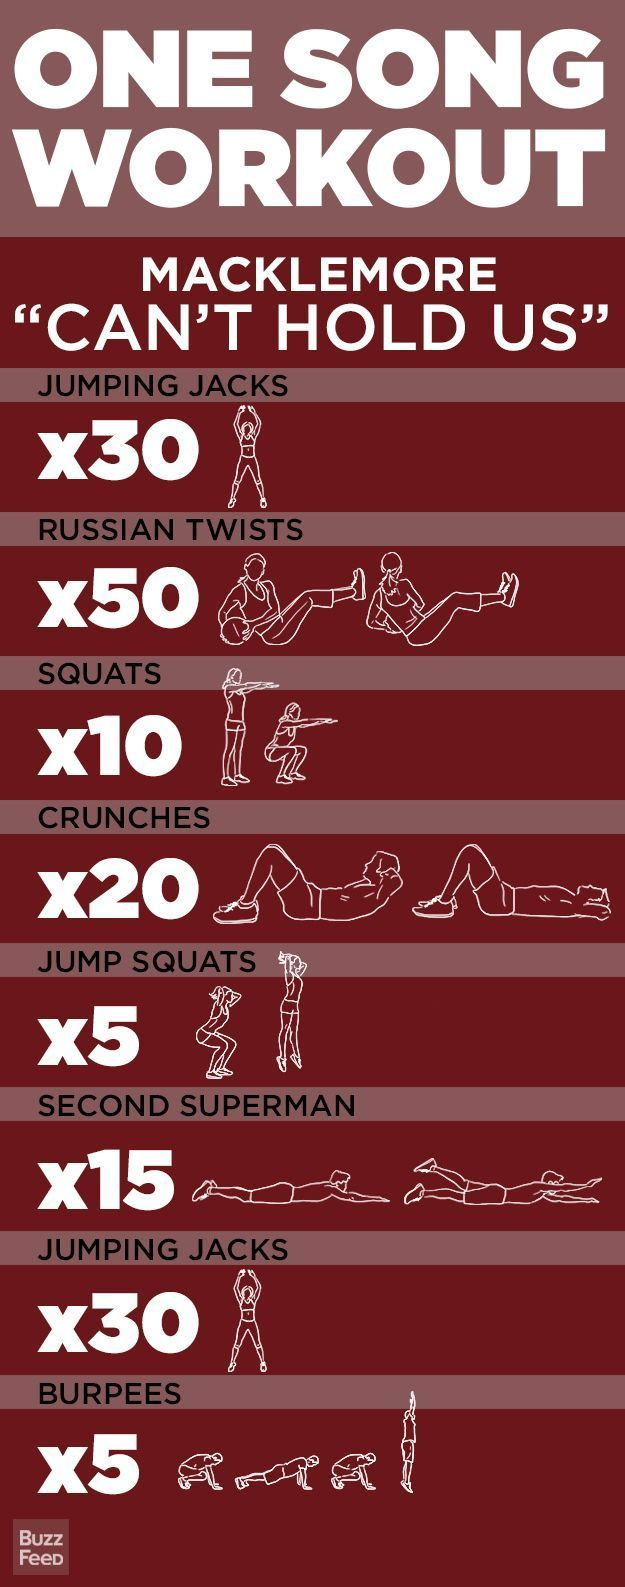 Drop the Weight With Our Beginners Workout Schedule - If you're trying to drop pounds and are new to the whole exercise scene, then knowing exactly what to do can be a struggle. Since cardio, strength training, stretching, and days of rest are all equally important, here's a weekly schedule to help you balance it all out and still see results.